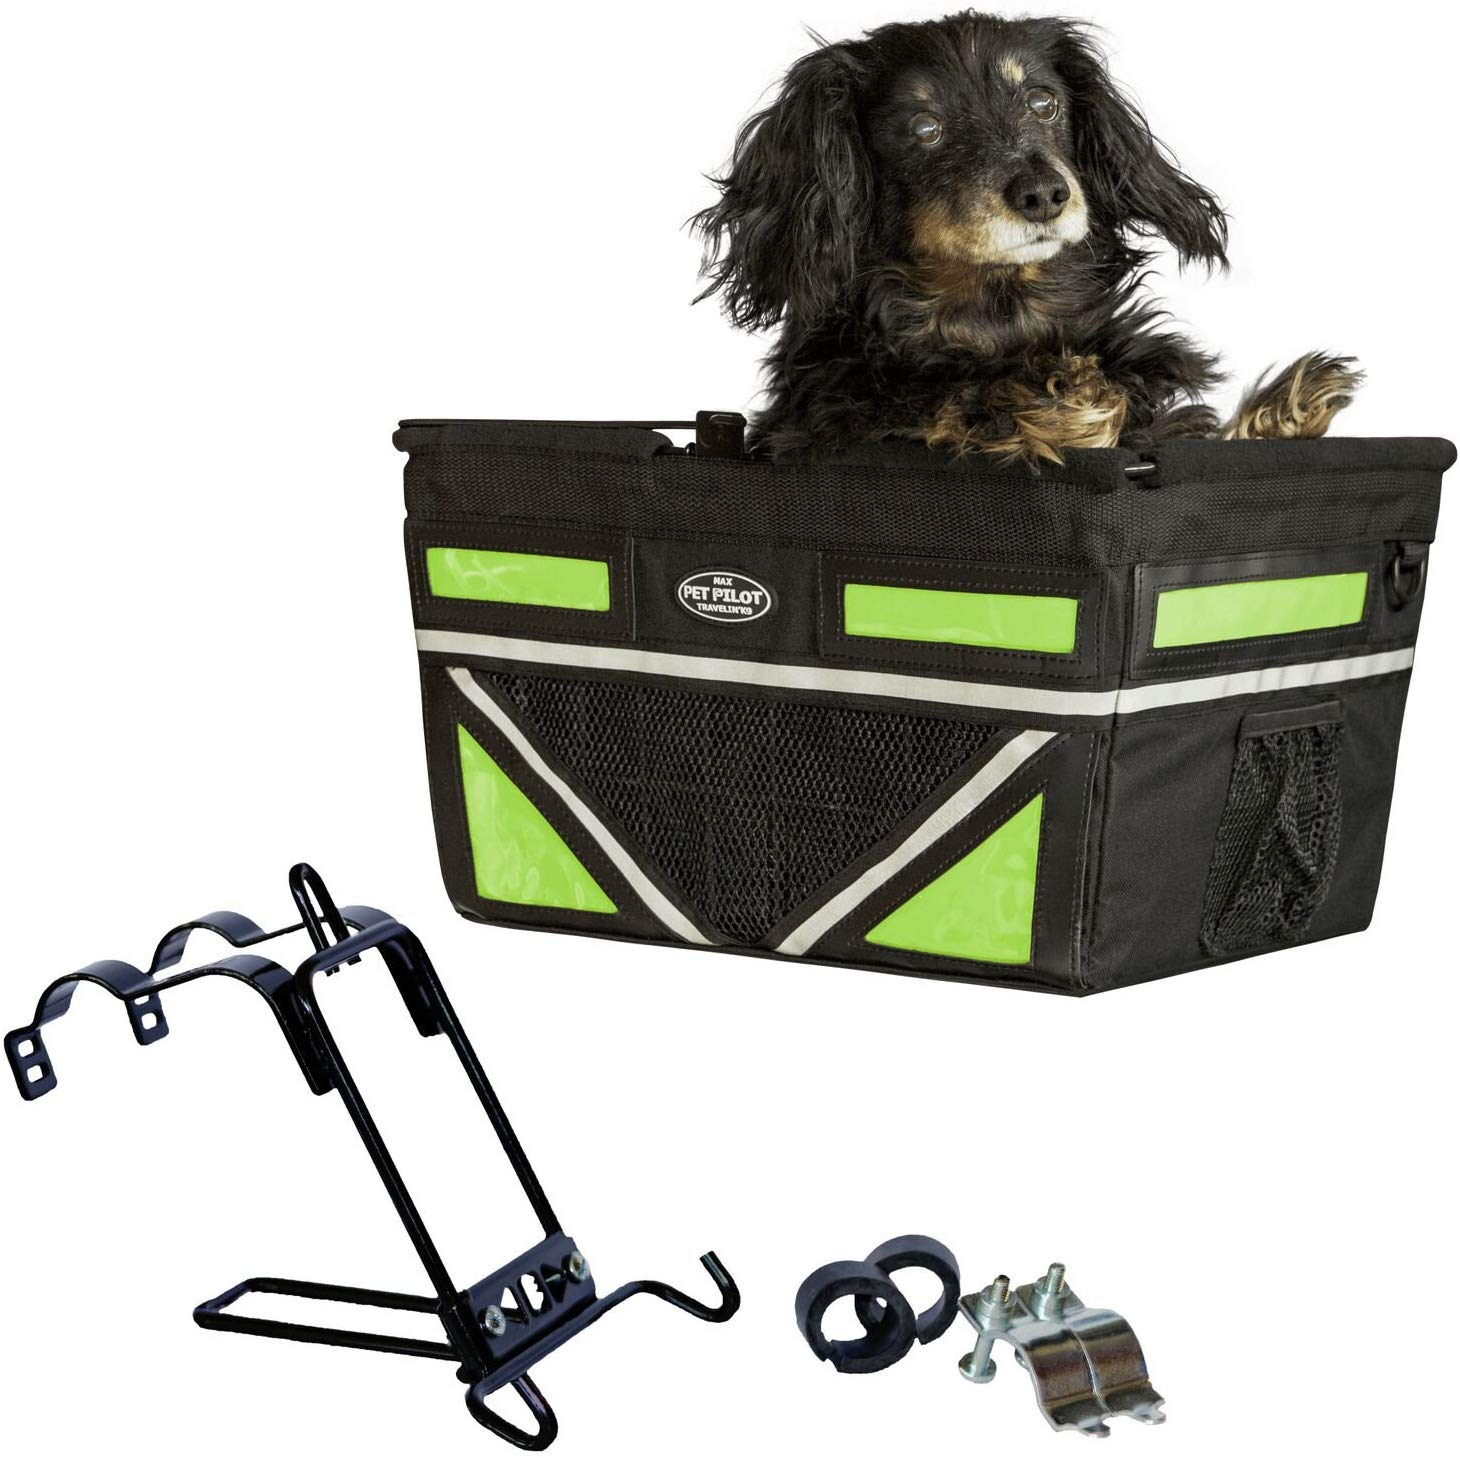 Travelin K9 2019 Pet-Pilot MAX Large Bike Basket for Dogs & Cats, Neon Green